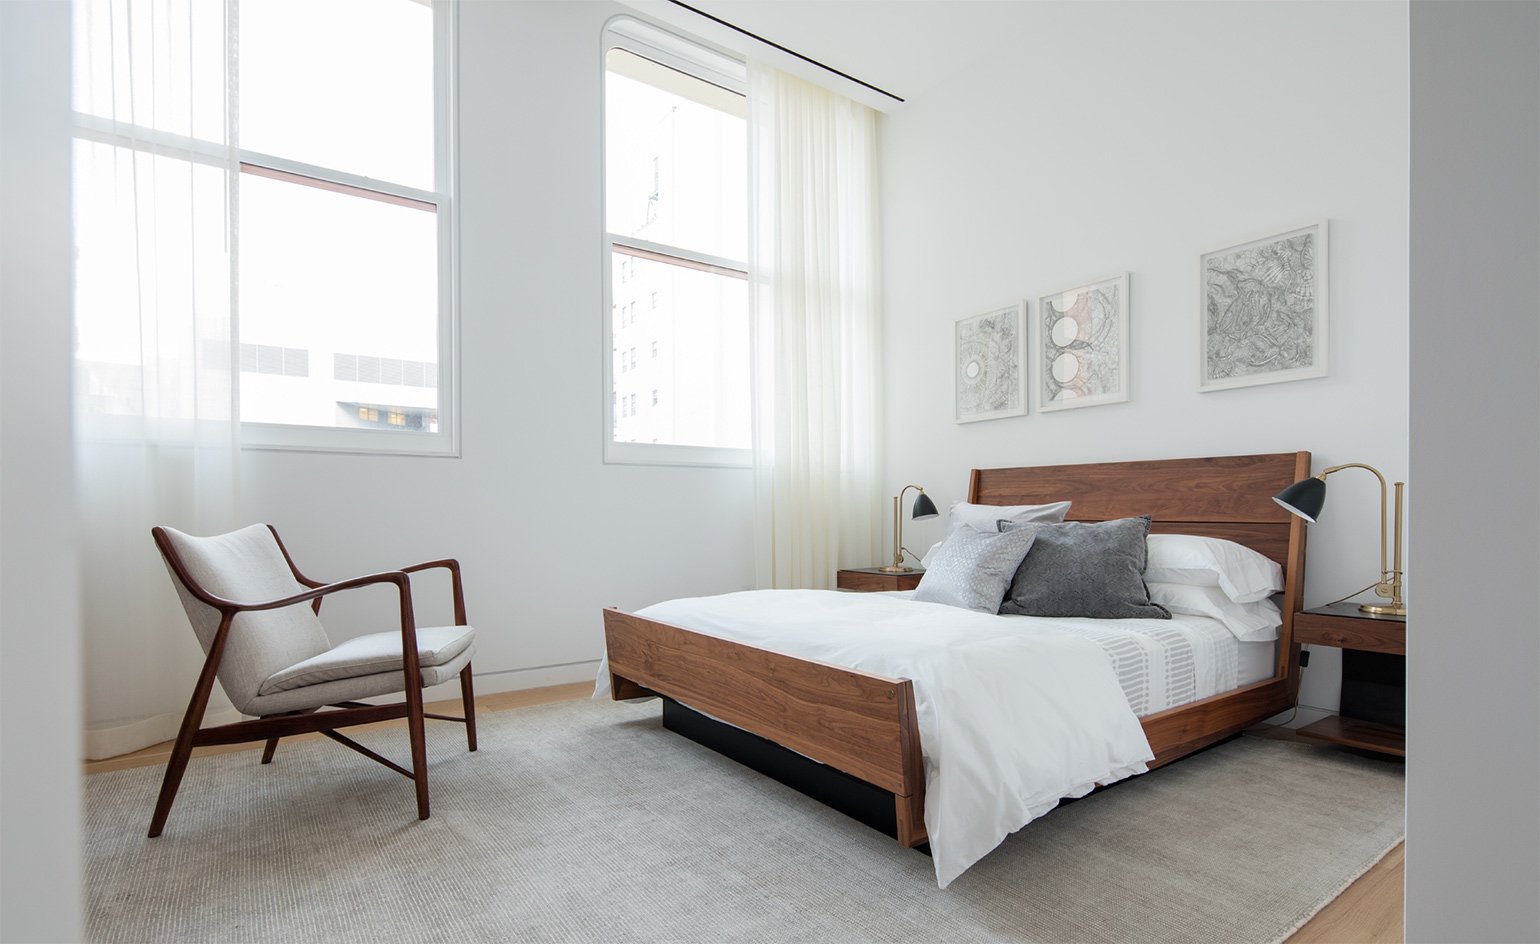 Marvelous Pictured here in the second guest room a queen sized bed in walnut and a Finn Juhl Frame Chair